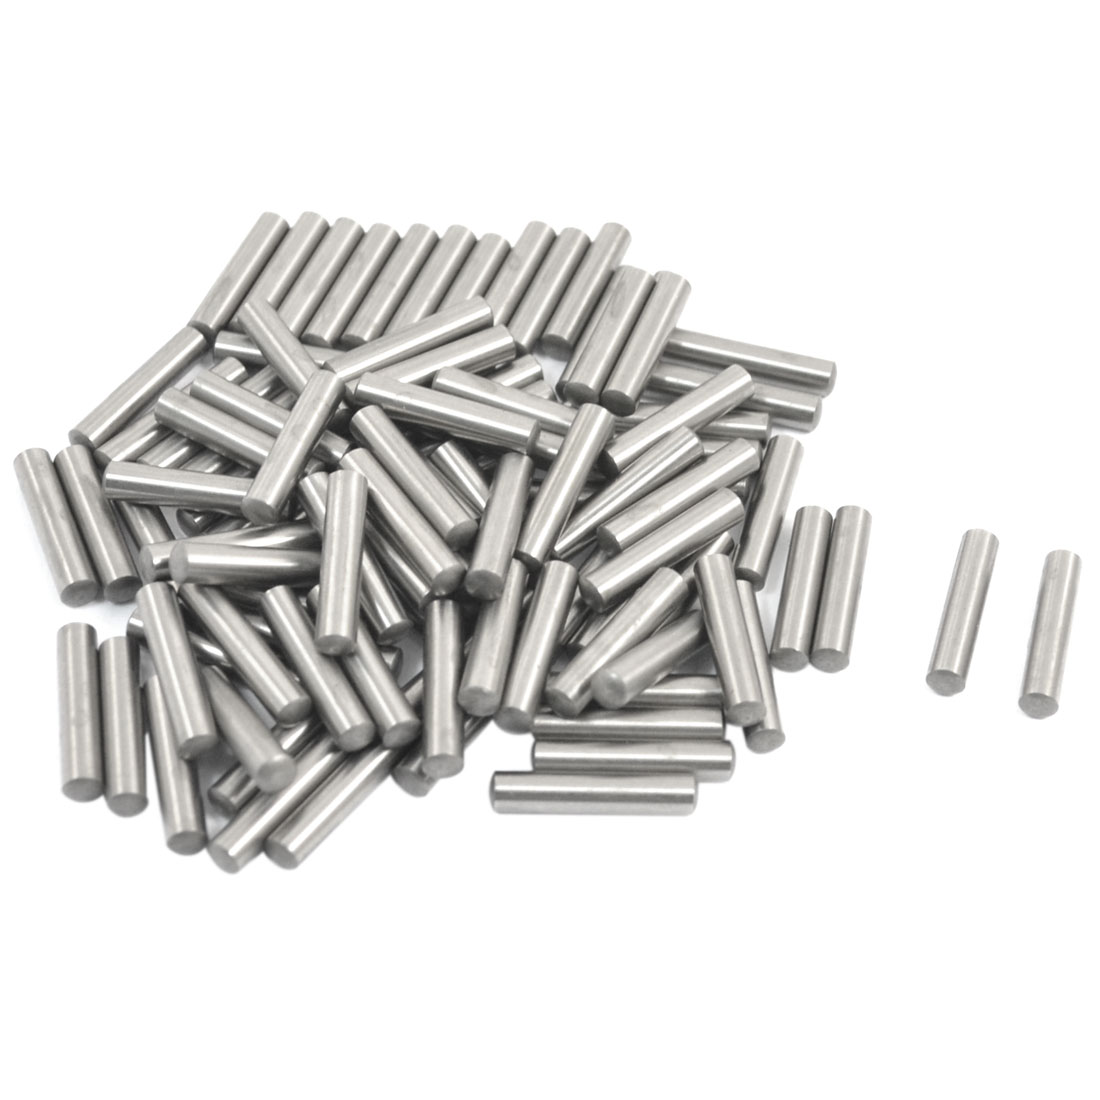 100 Pcs Stainless Steel 3.17mm x 15.8mm Parallel Dowel Pins Fasten Elements Silver Tone